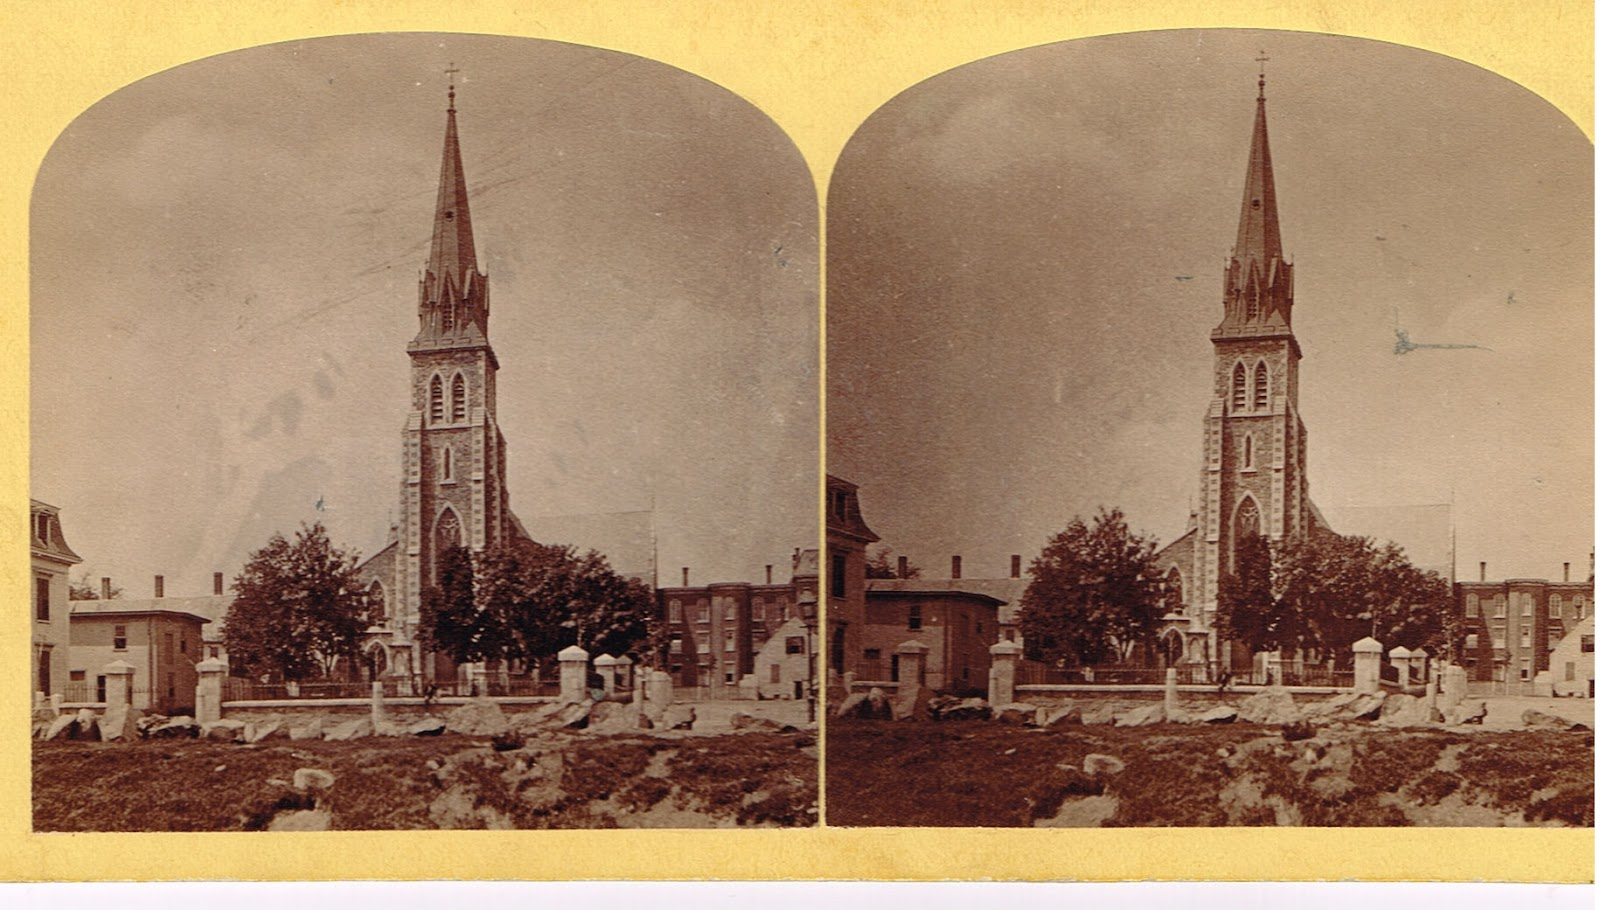 A stereoscopic view of Saint Patrick's in Lowell, Massachusetts, founded in 1831 and the first Catholic parish in the region. Image taken circa 1876-1881.